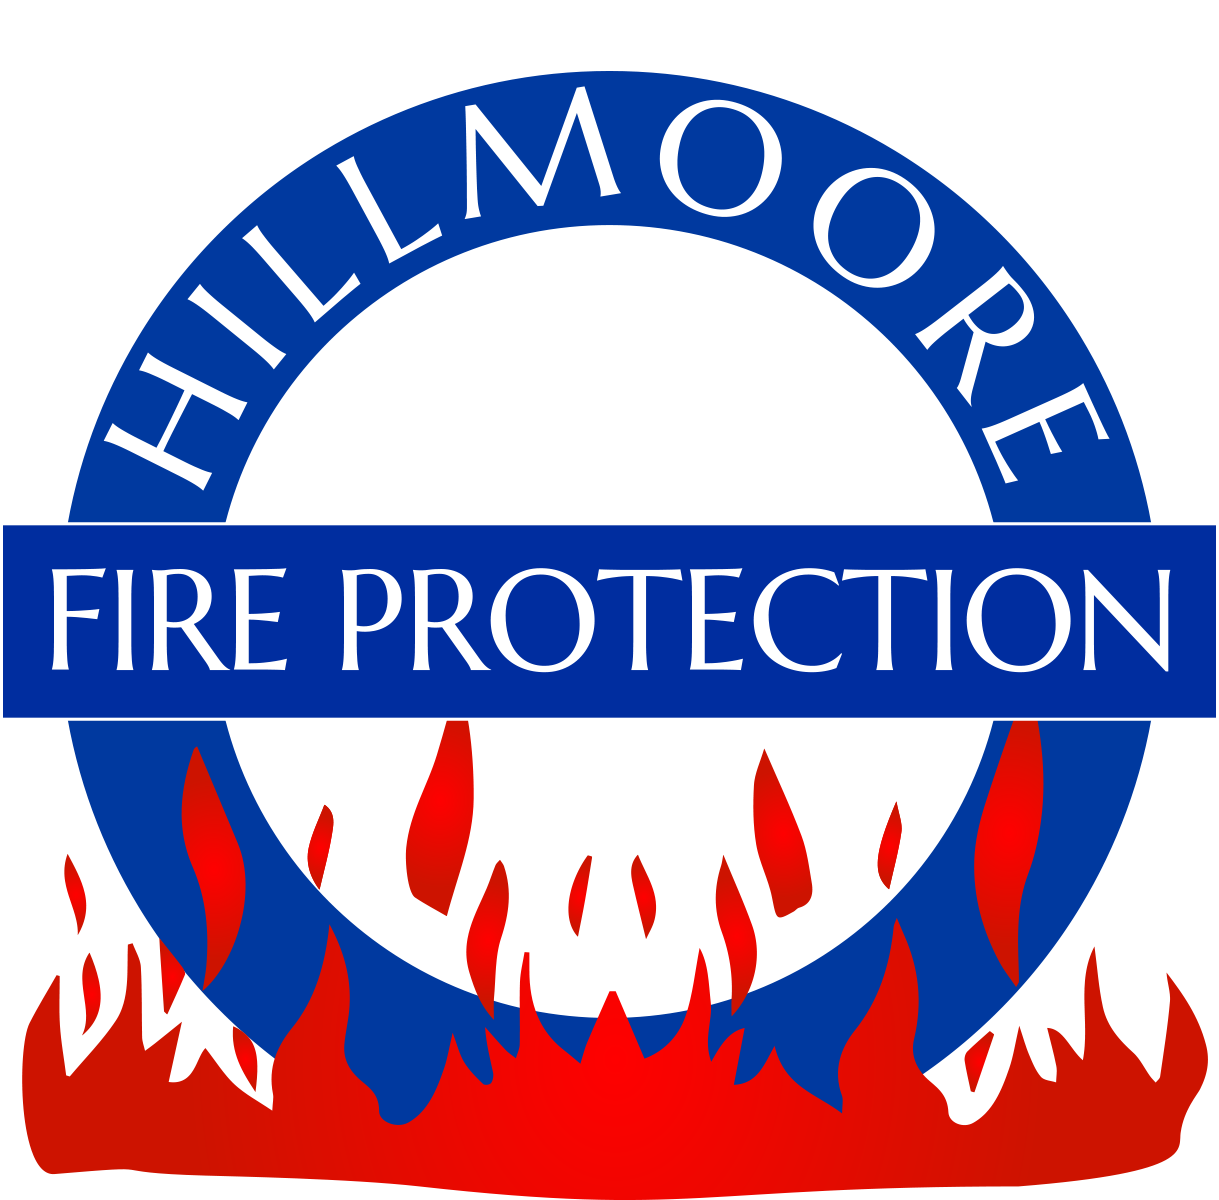 Hillmoore Fire Protection